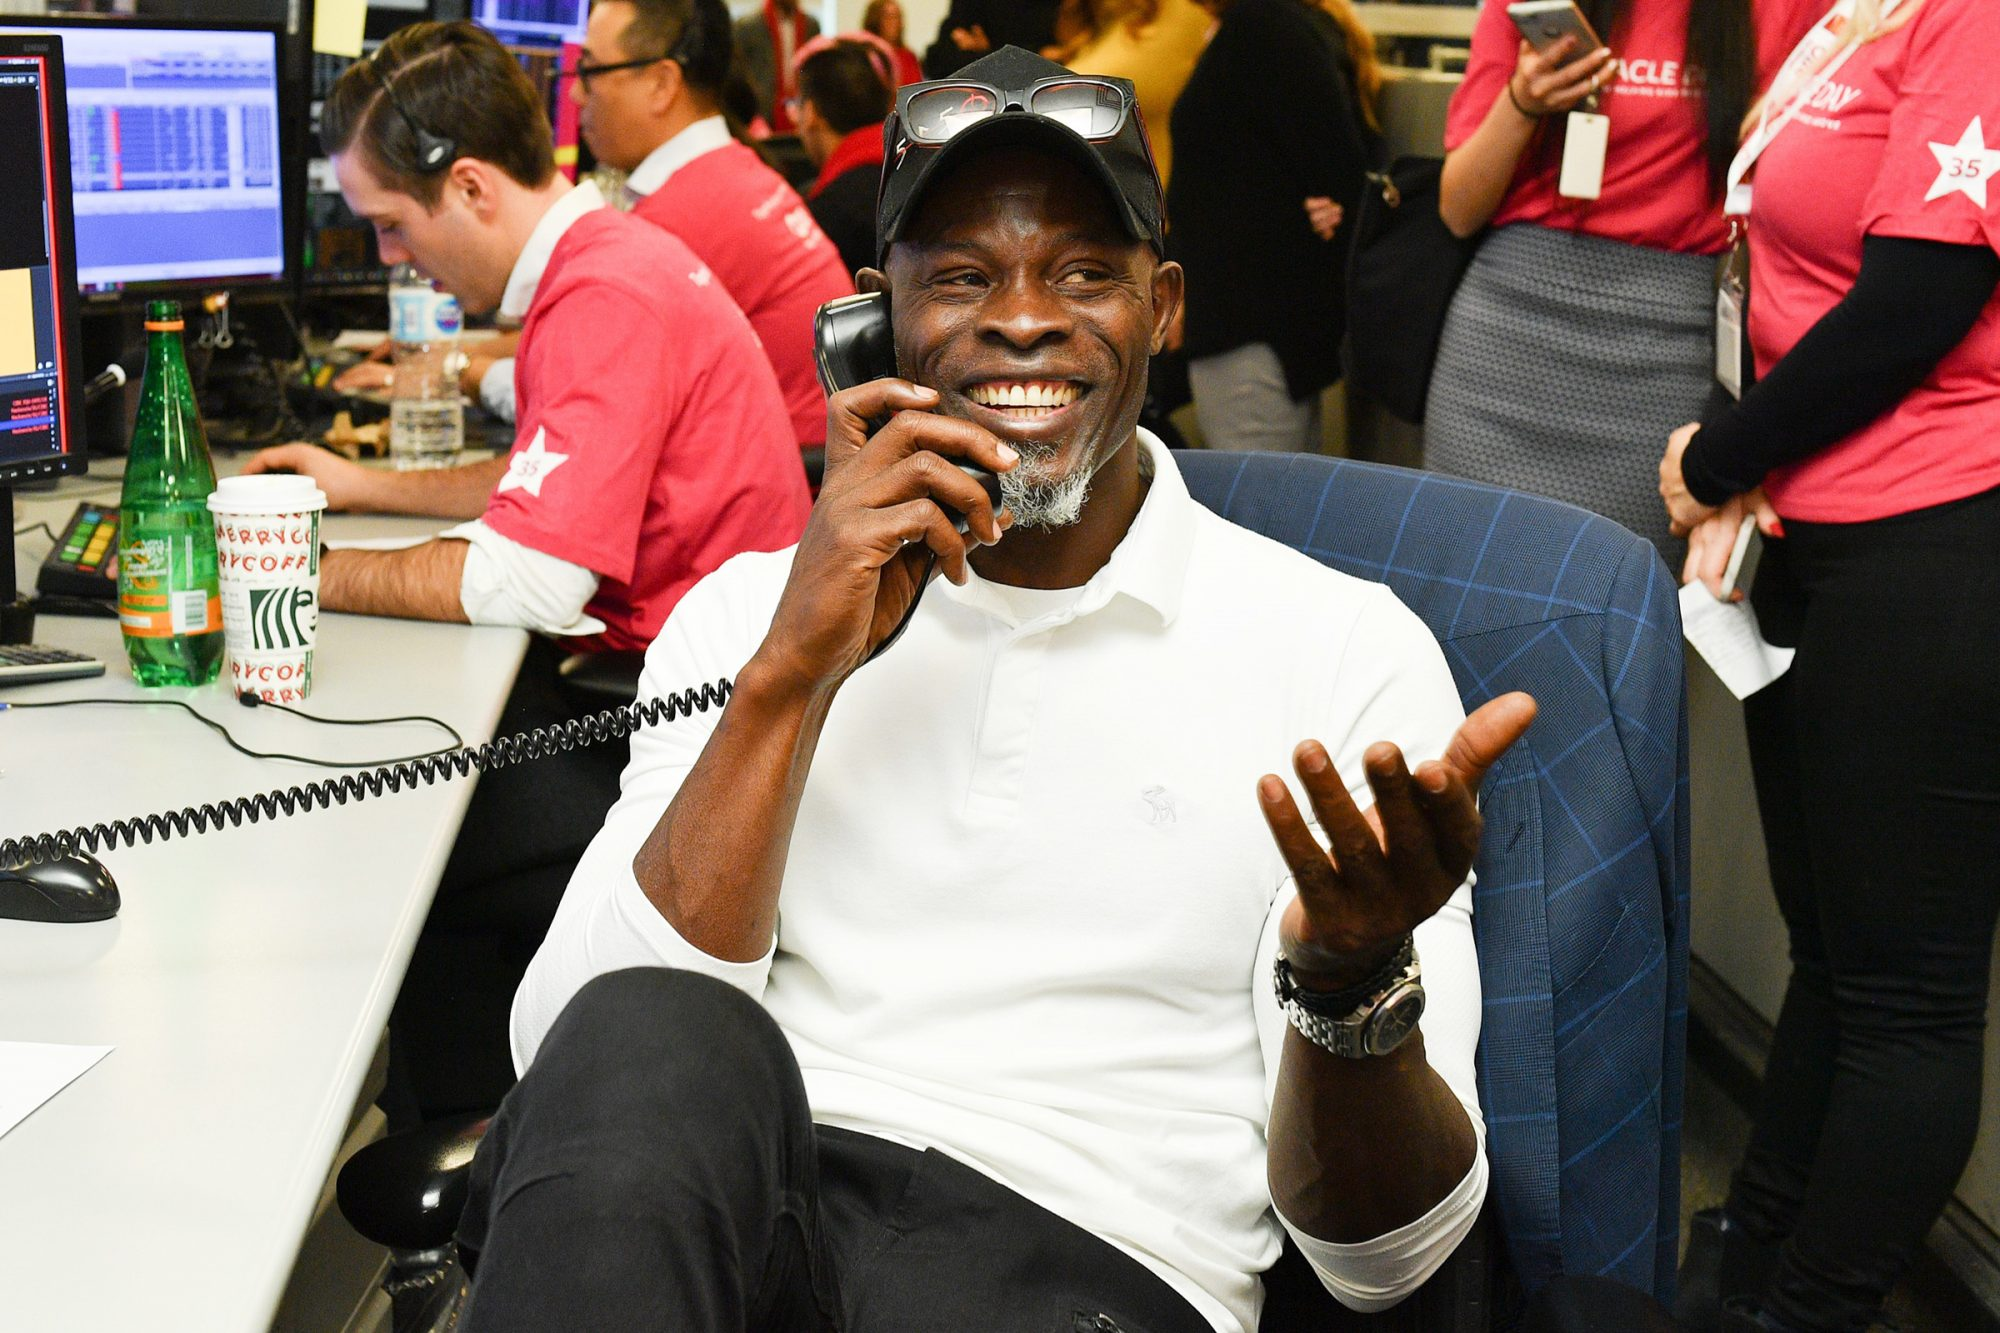 Djimon Hounsou attends The 35th Anniversary Of CIBC Miracle Day to lend a hand to raise millions for kids in need held at CIBC Headquarters December 04, 2019 in Toronto, Canada